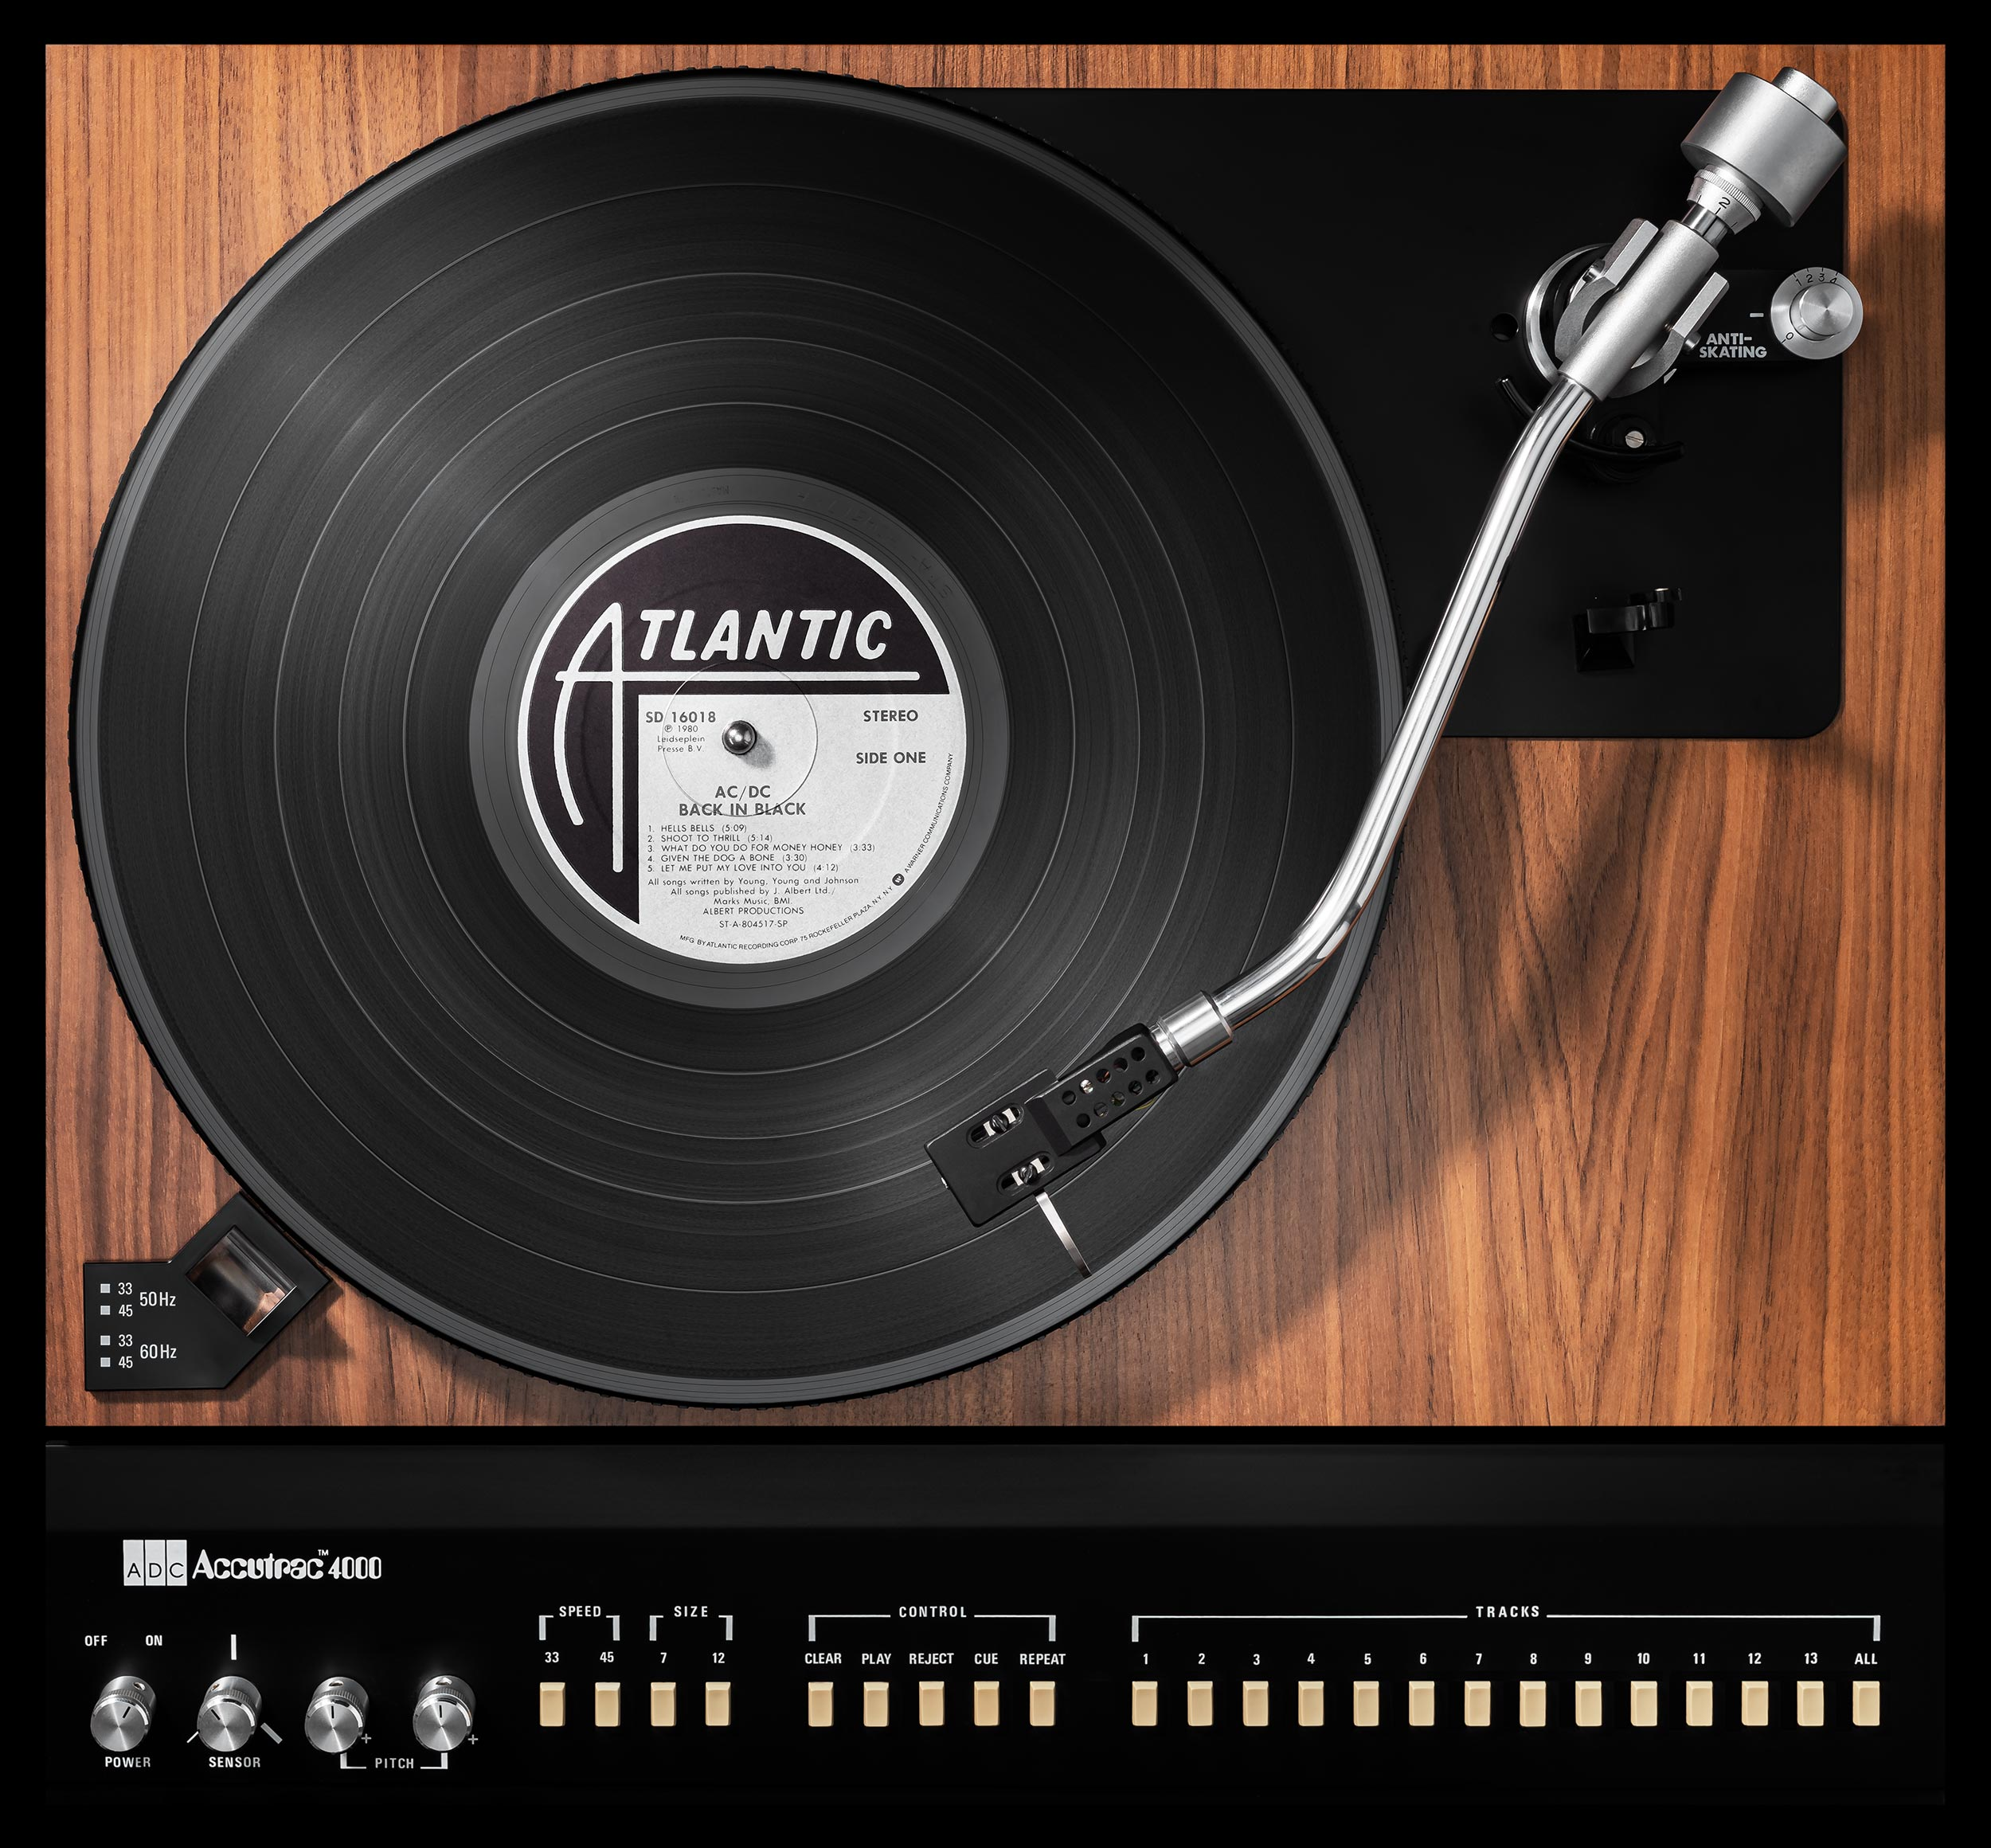 Vinylography No. 14 AC DC Back In Black on Accutrac 4000